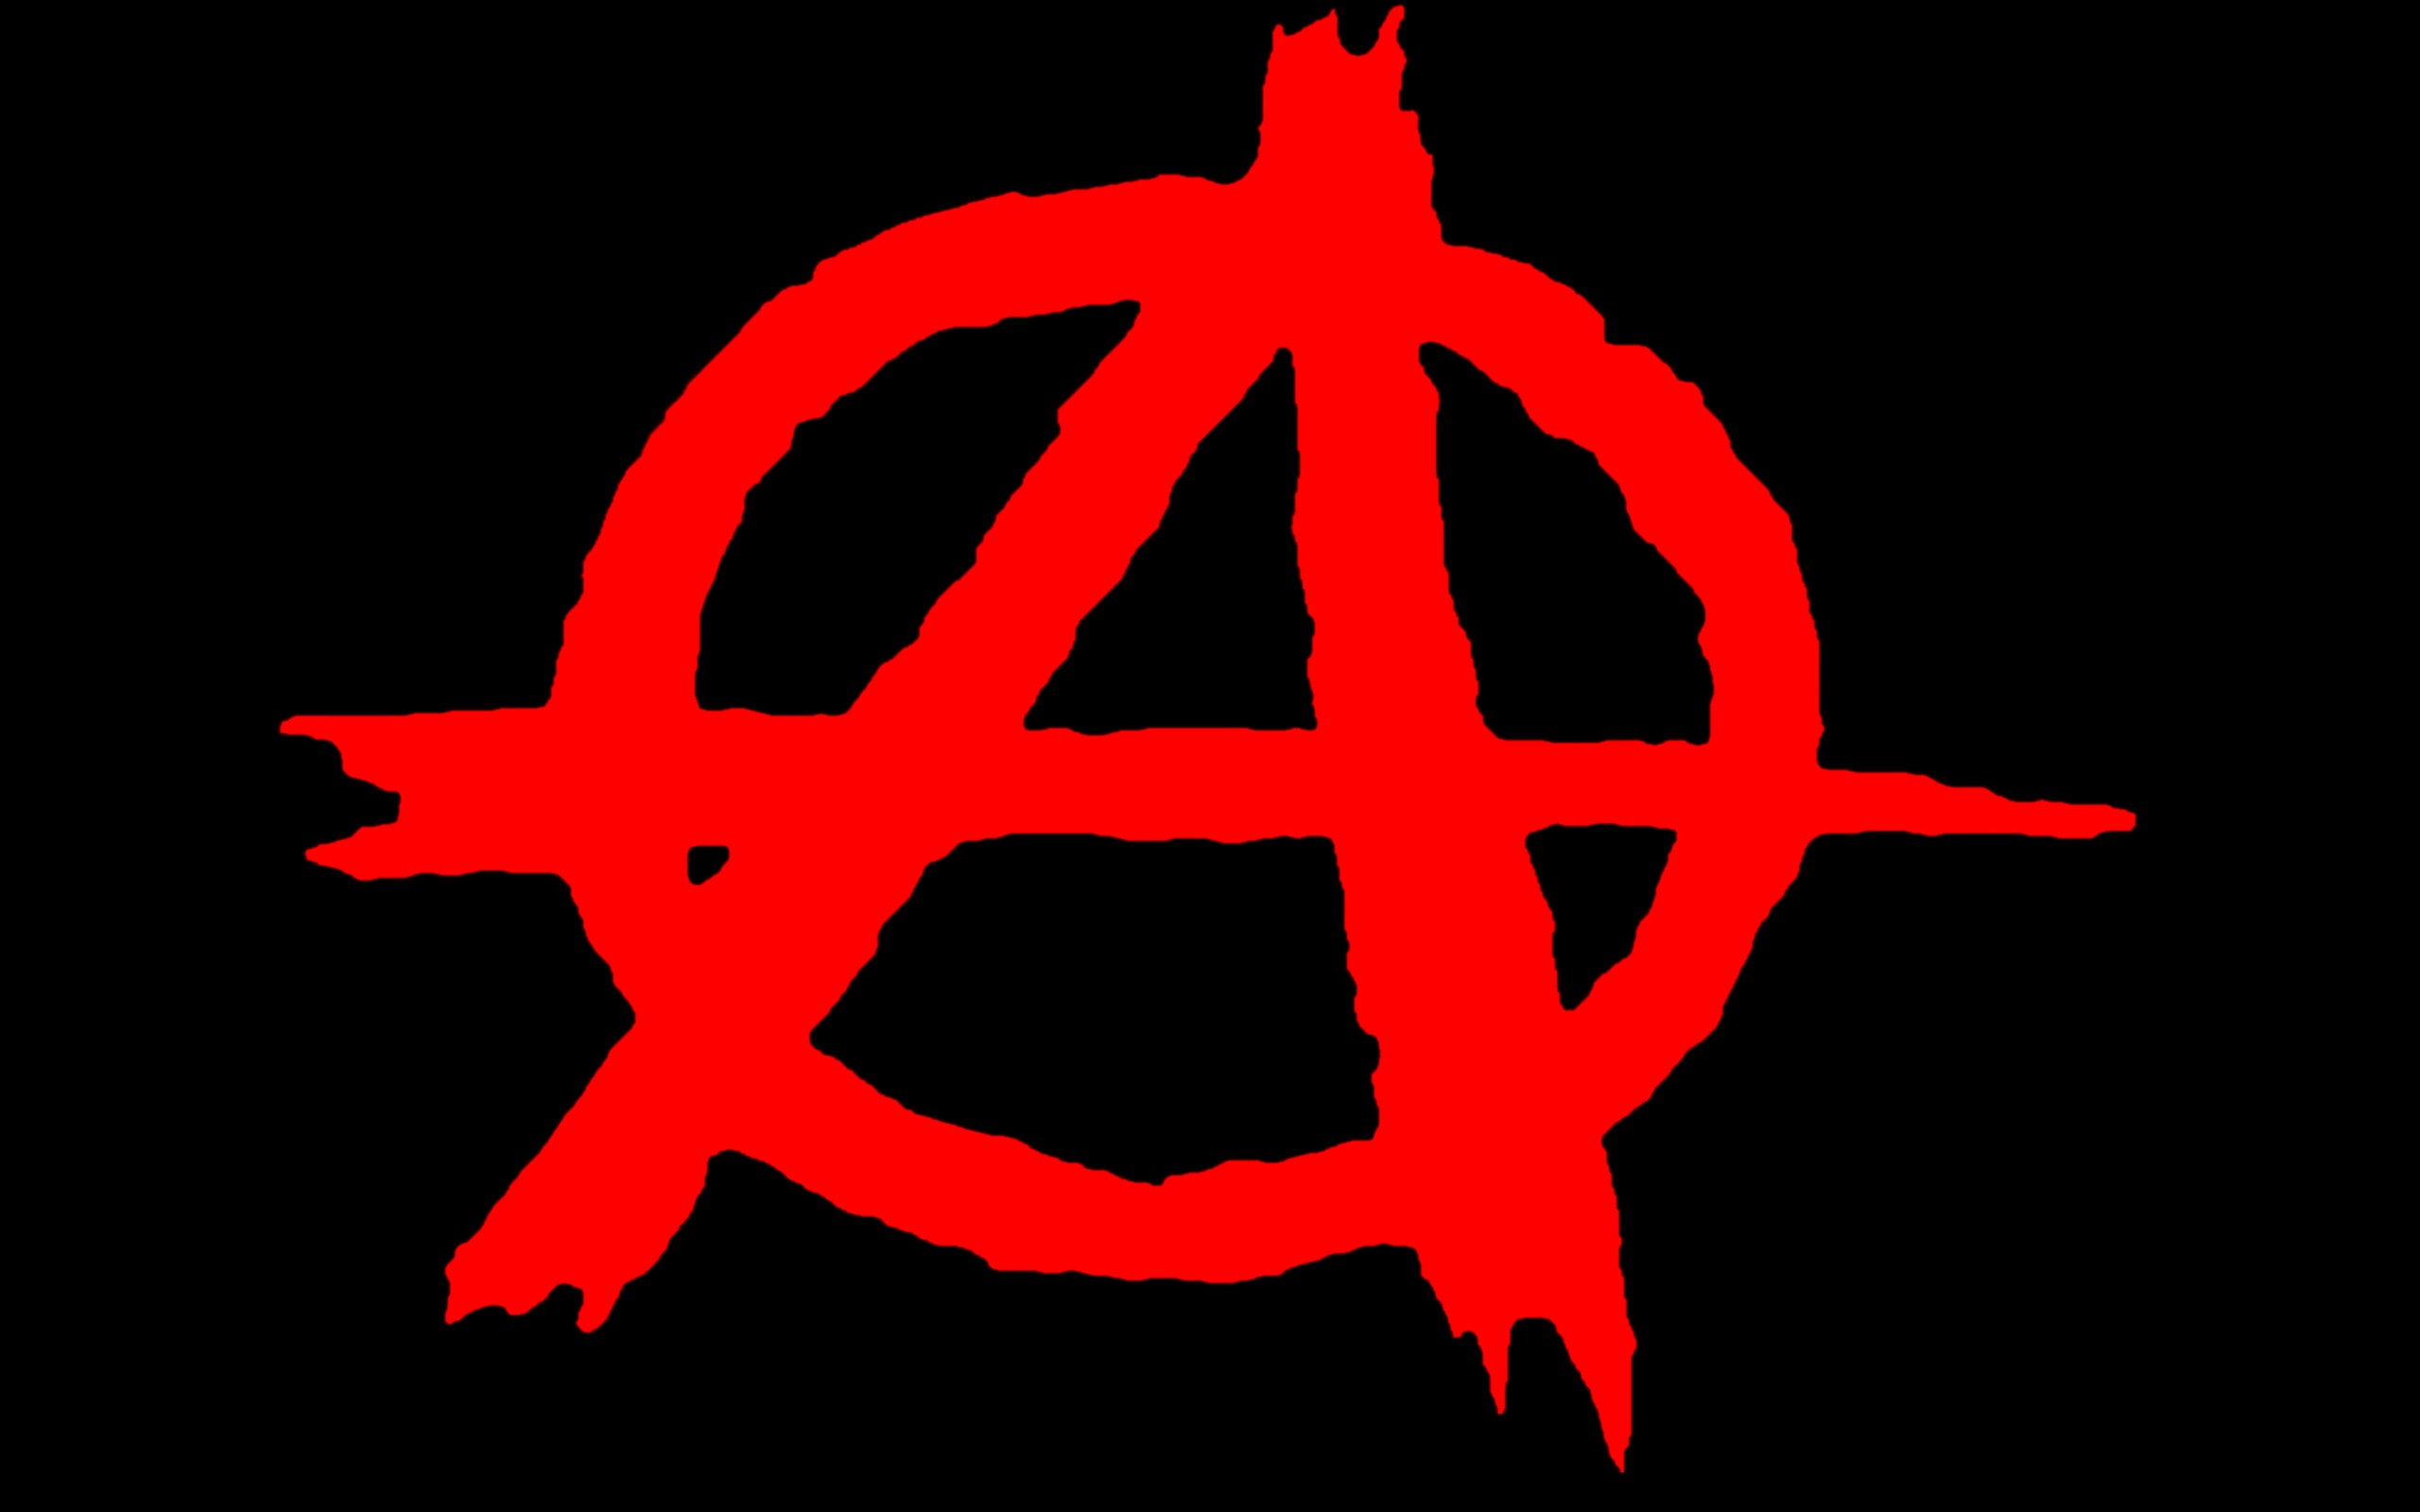 THE FUNDAMENTALS OF ANARCHISM